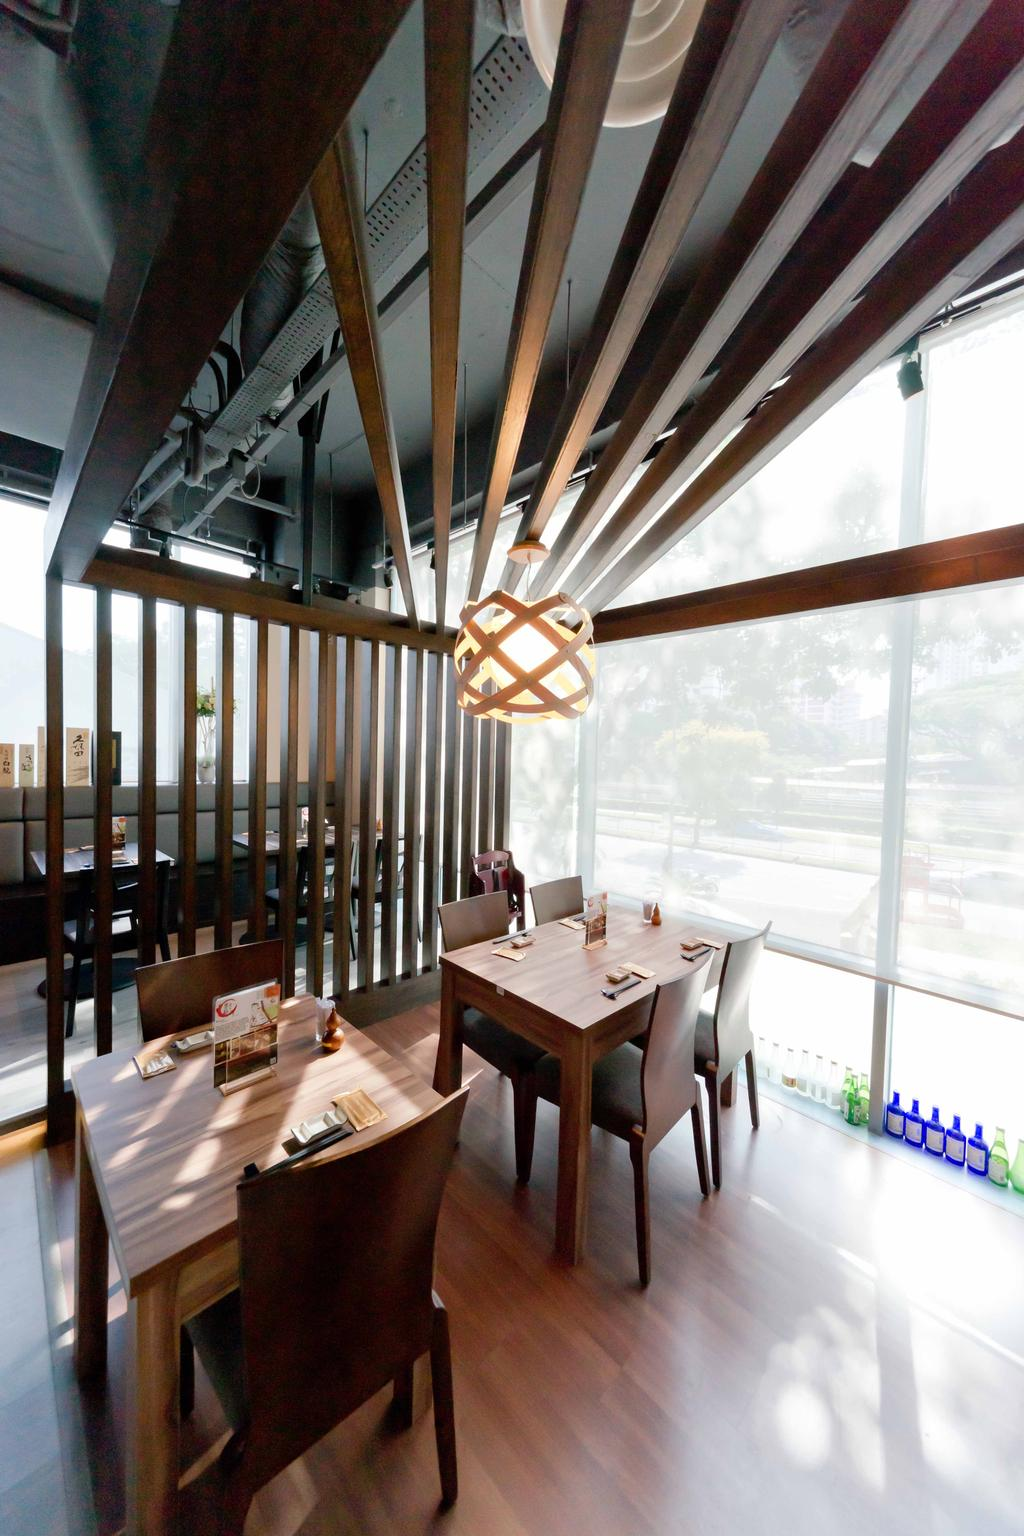 Kinsa Sushi (Ang Mo Kio), Commercial, Interior Designer, Unity ID, Traditional, Dining Table, Dining Chair, Japanese, F B, Shop Interior, Exposed Ceiling, Wooden Beams, Pendant Lamps, Hanging Lamps